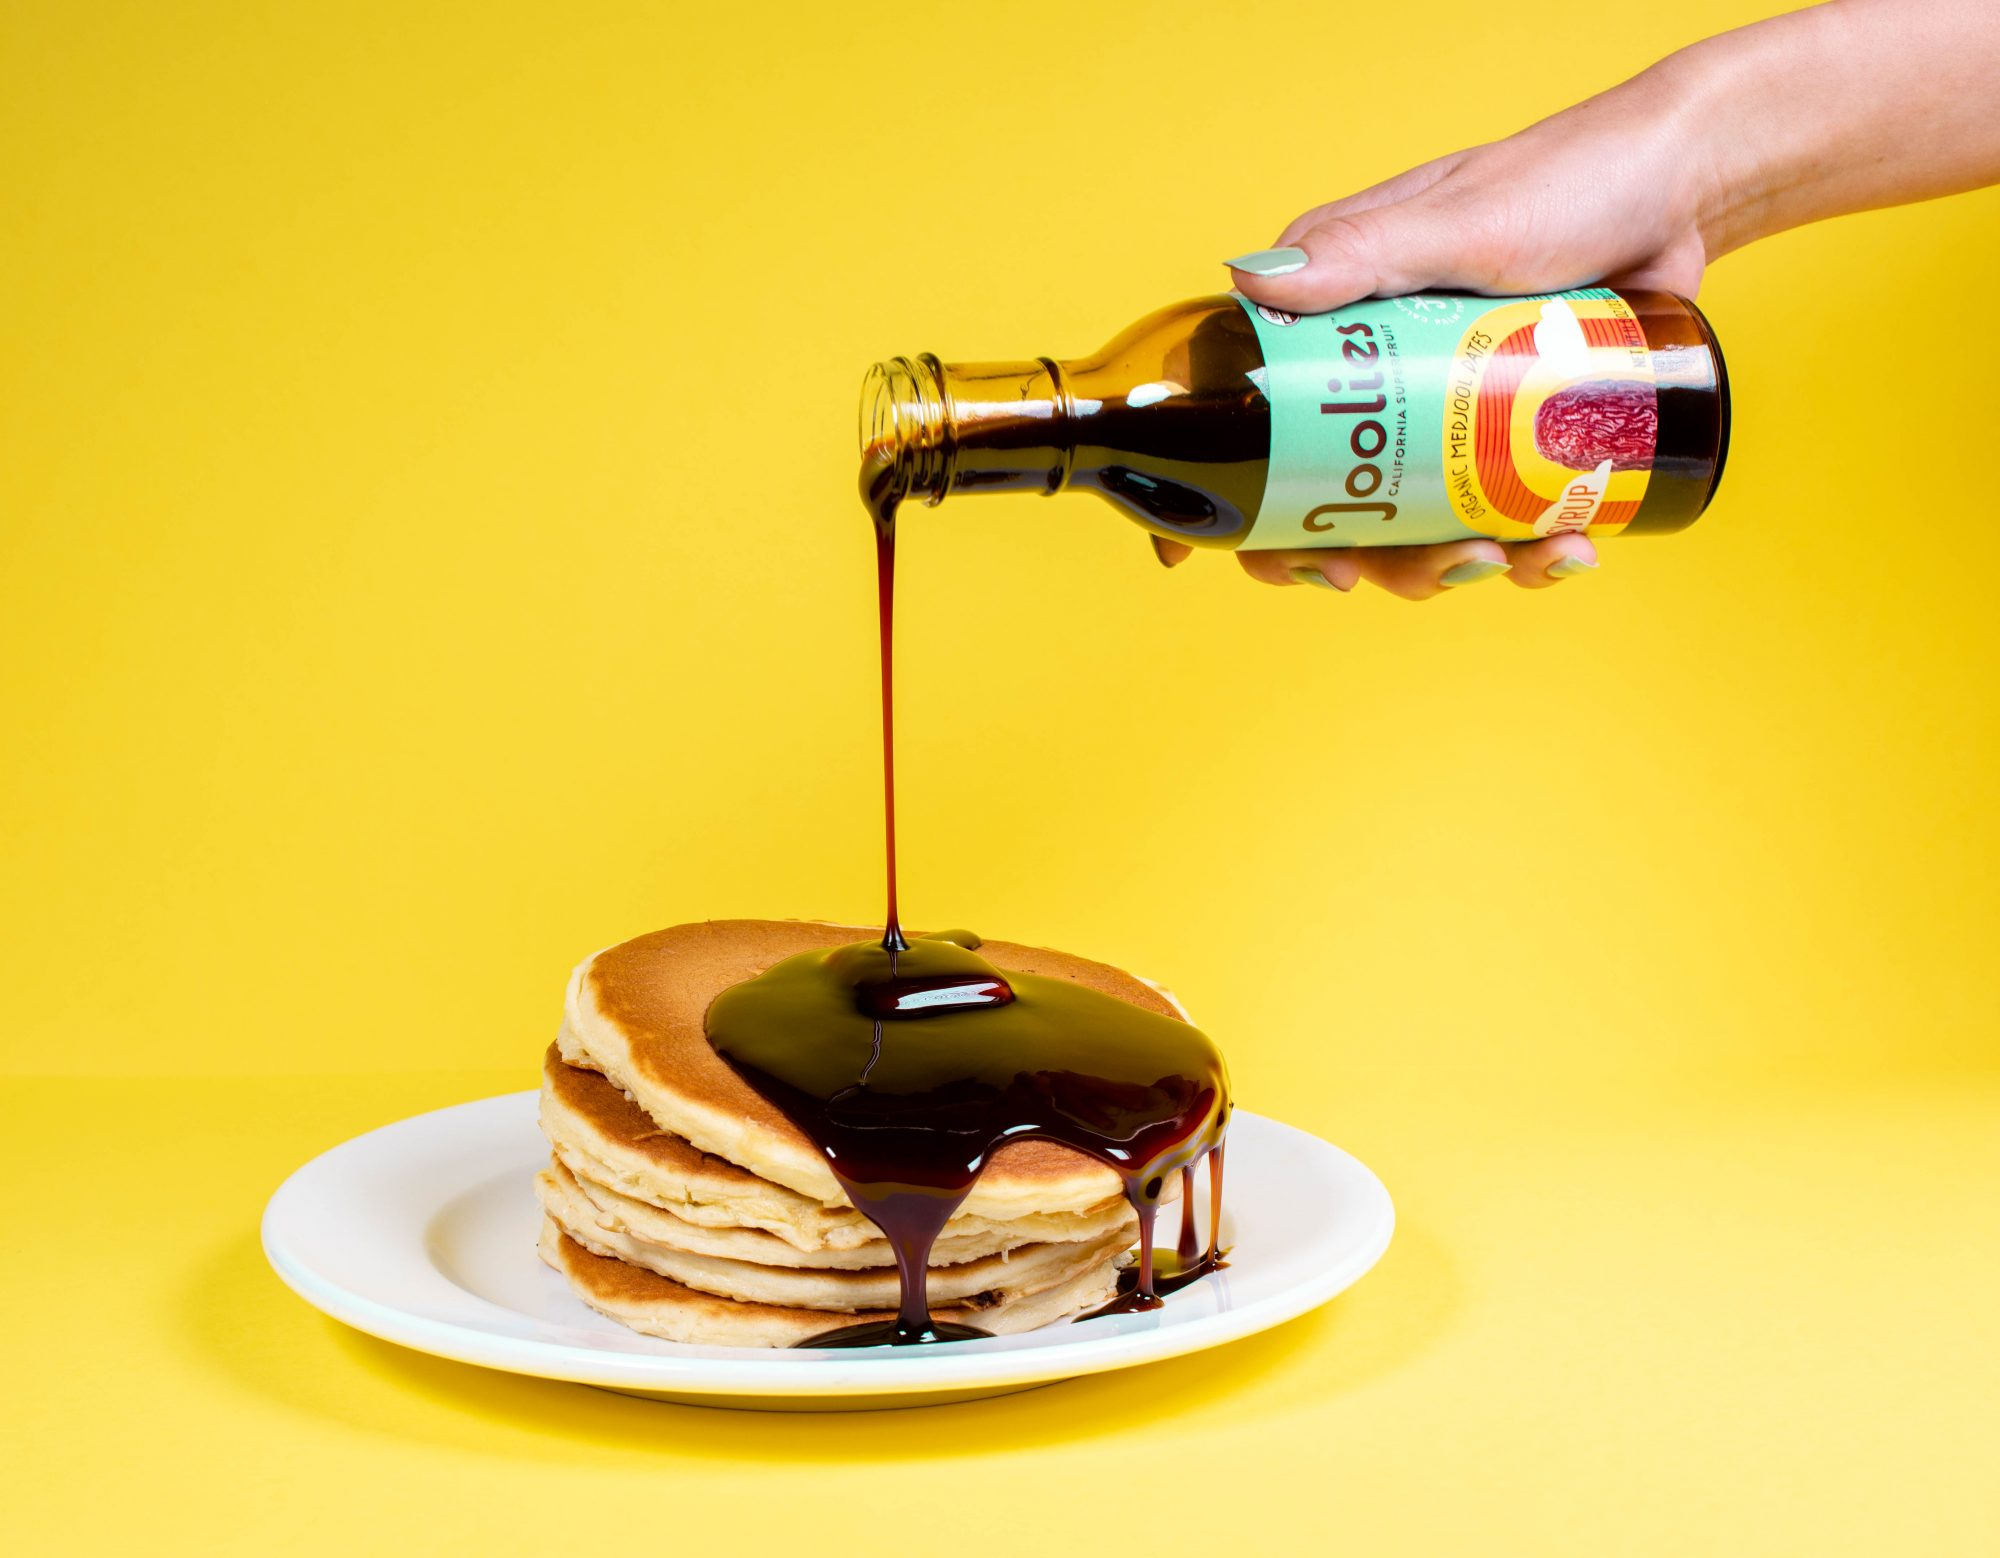 date syrup being poured onto pancakes